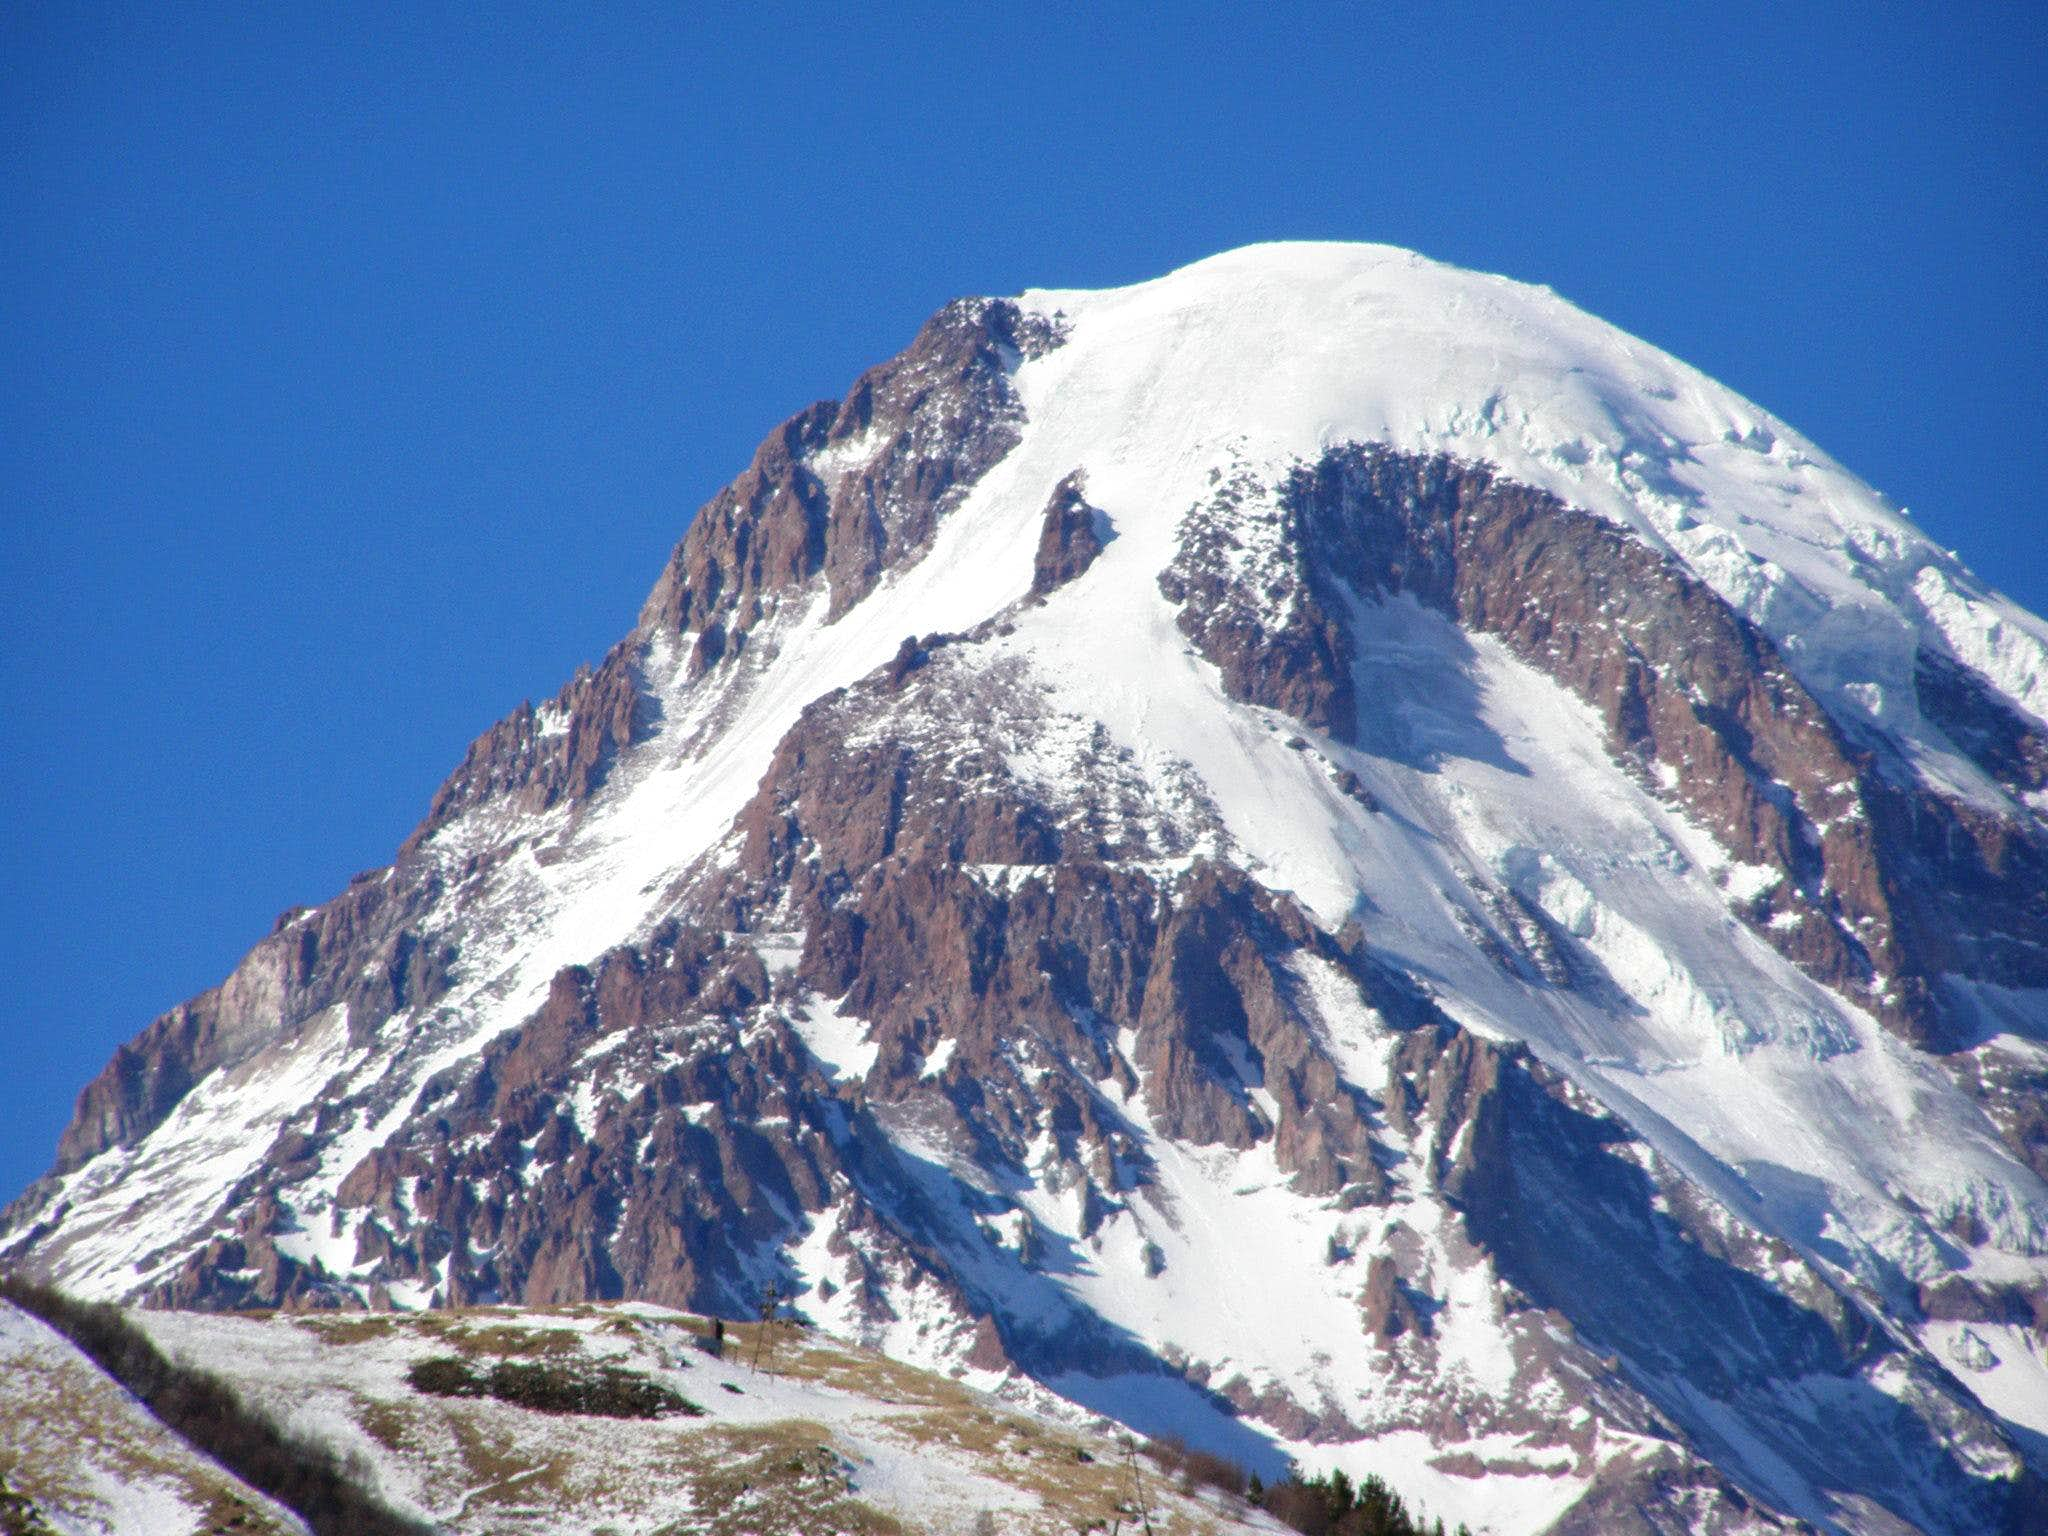 Cotnari on Kazbek